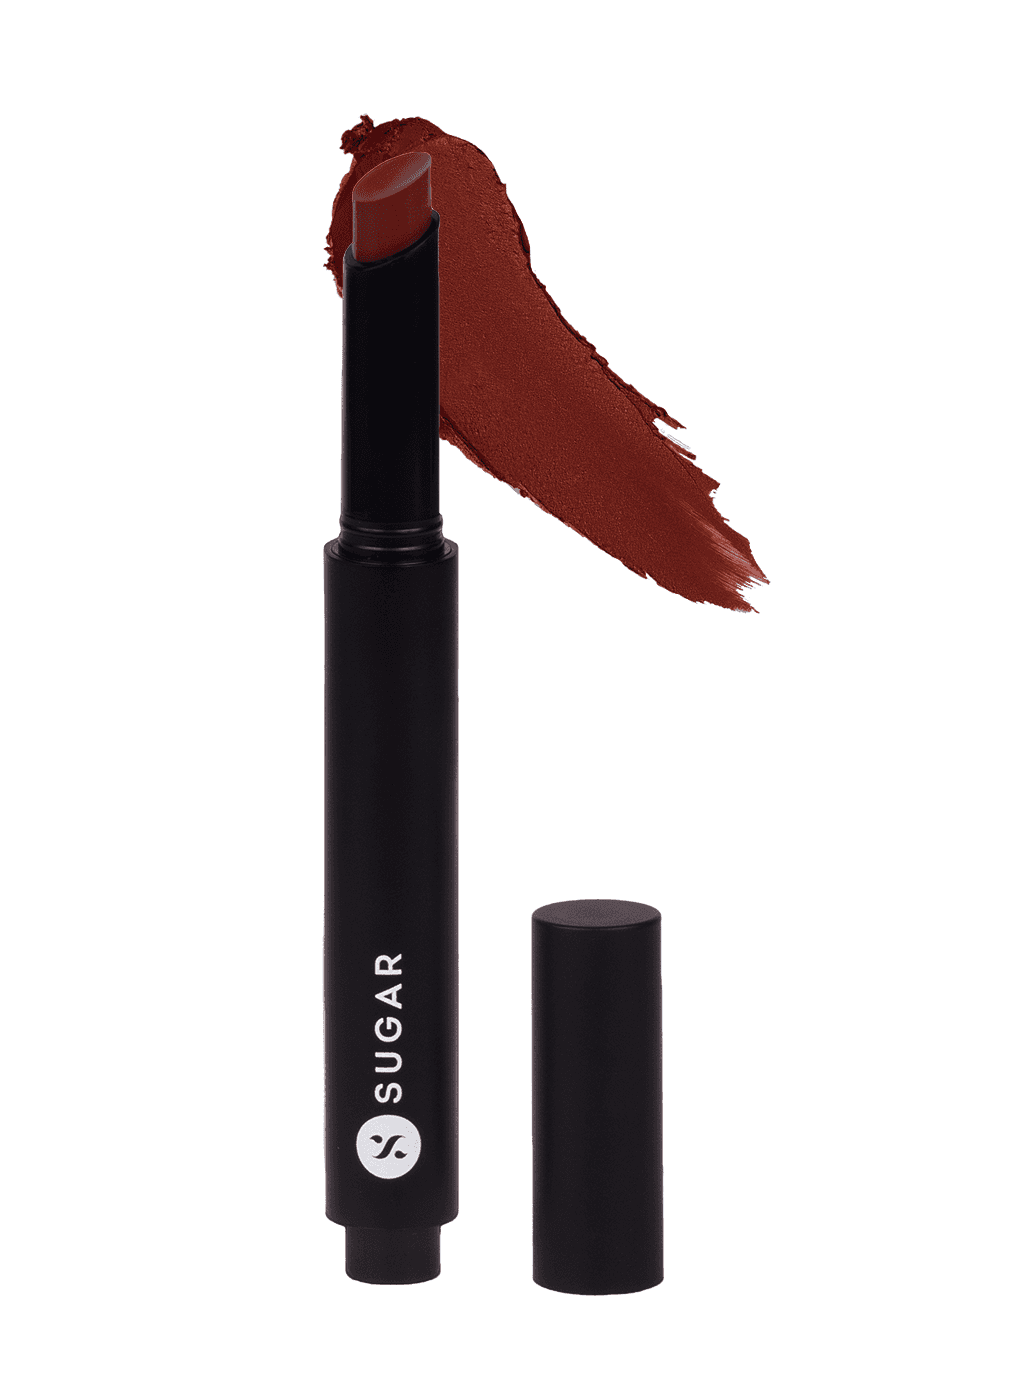 SUGAR Click Me Up Velvet Lipstick - 08 Smoking Sienna (Brown Toned Burnt Orange)